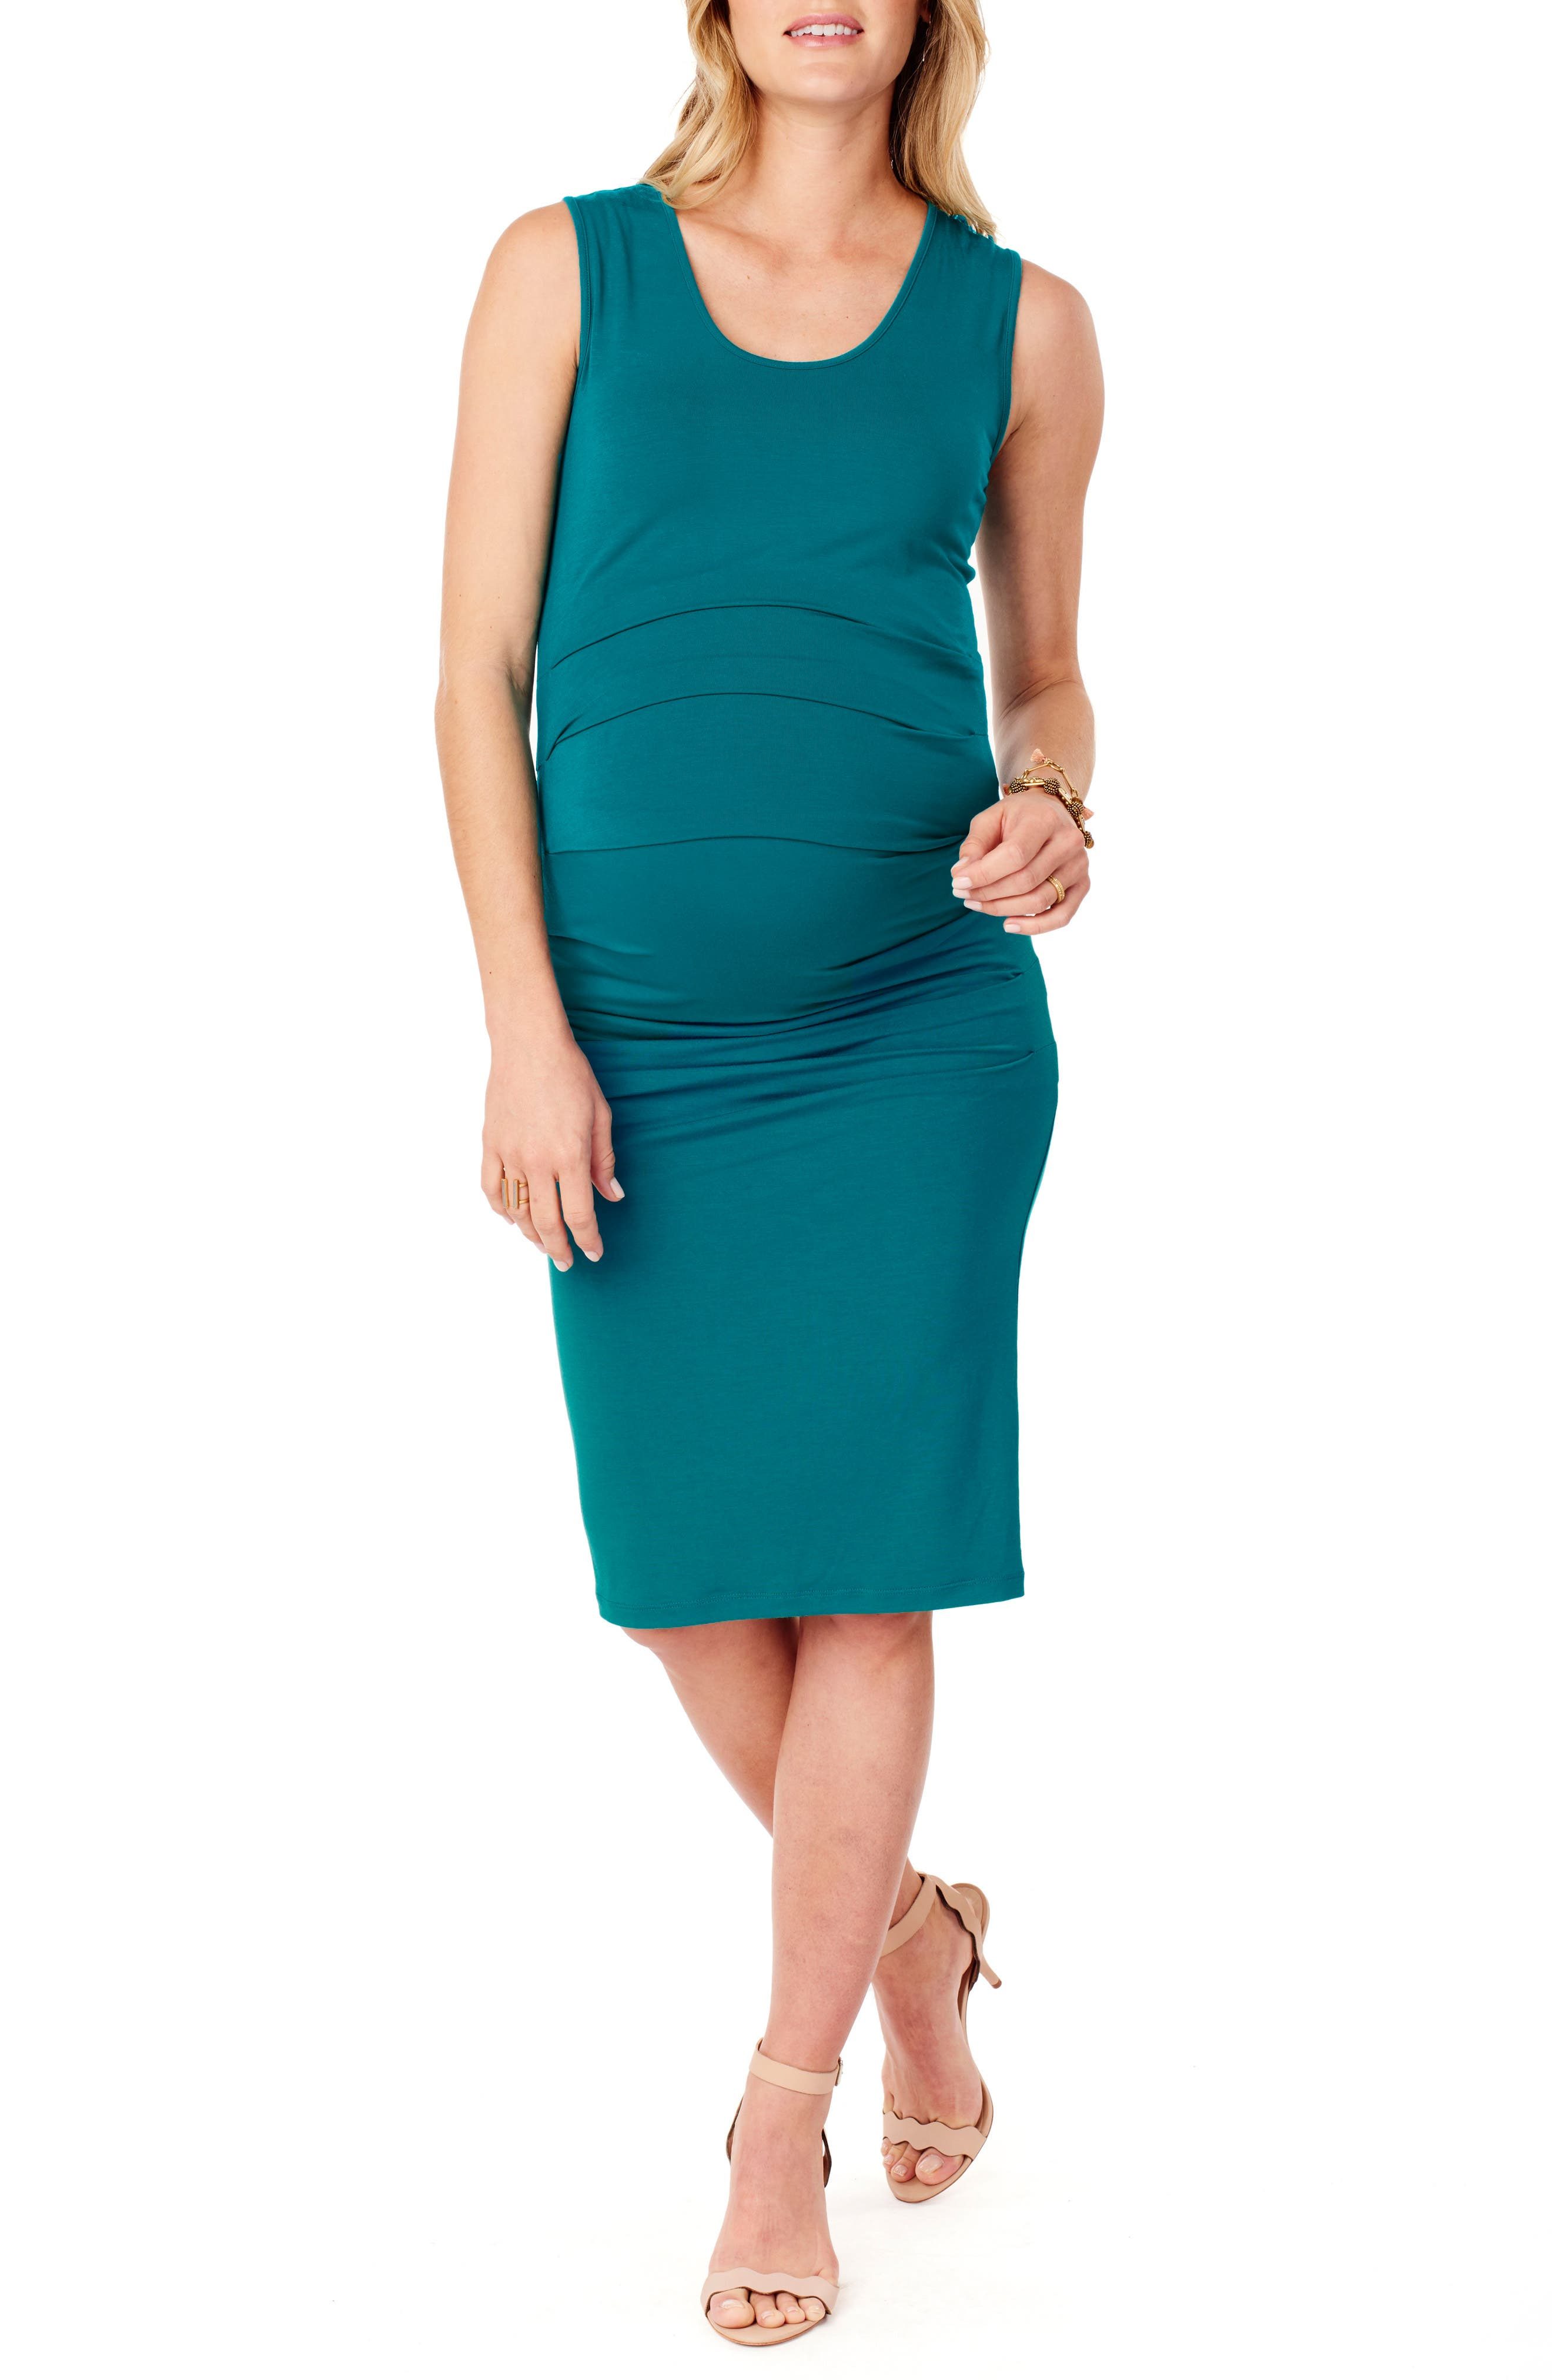 Ruched Maternity Tank Dress,                             Main thumbnail 1, color,                             TEAL